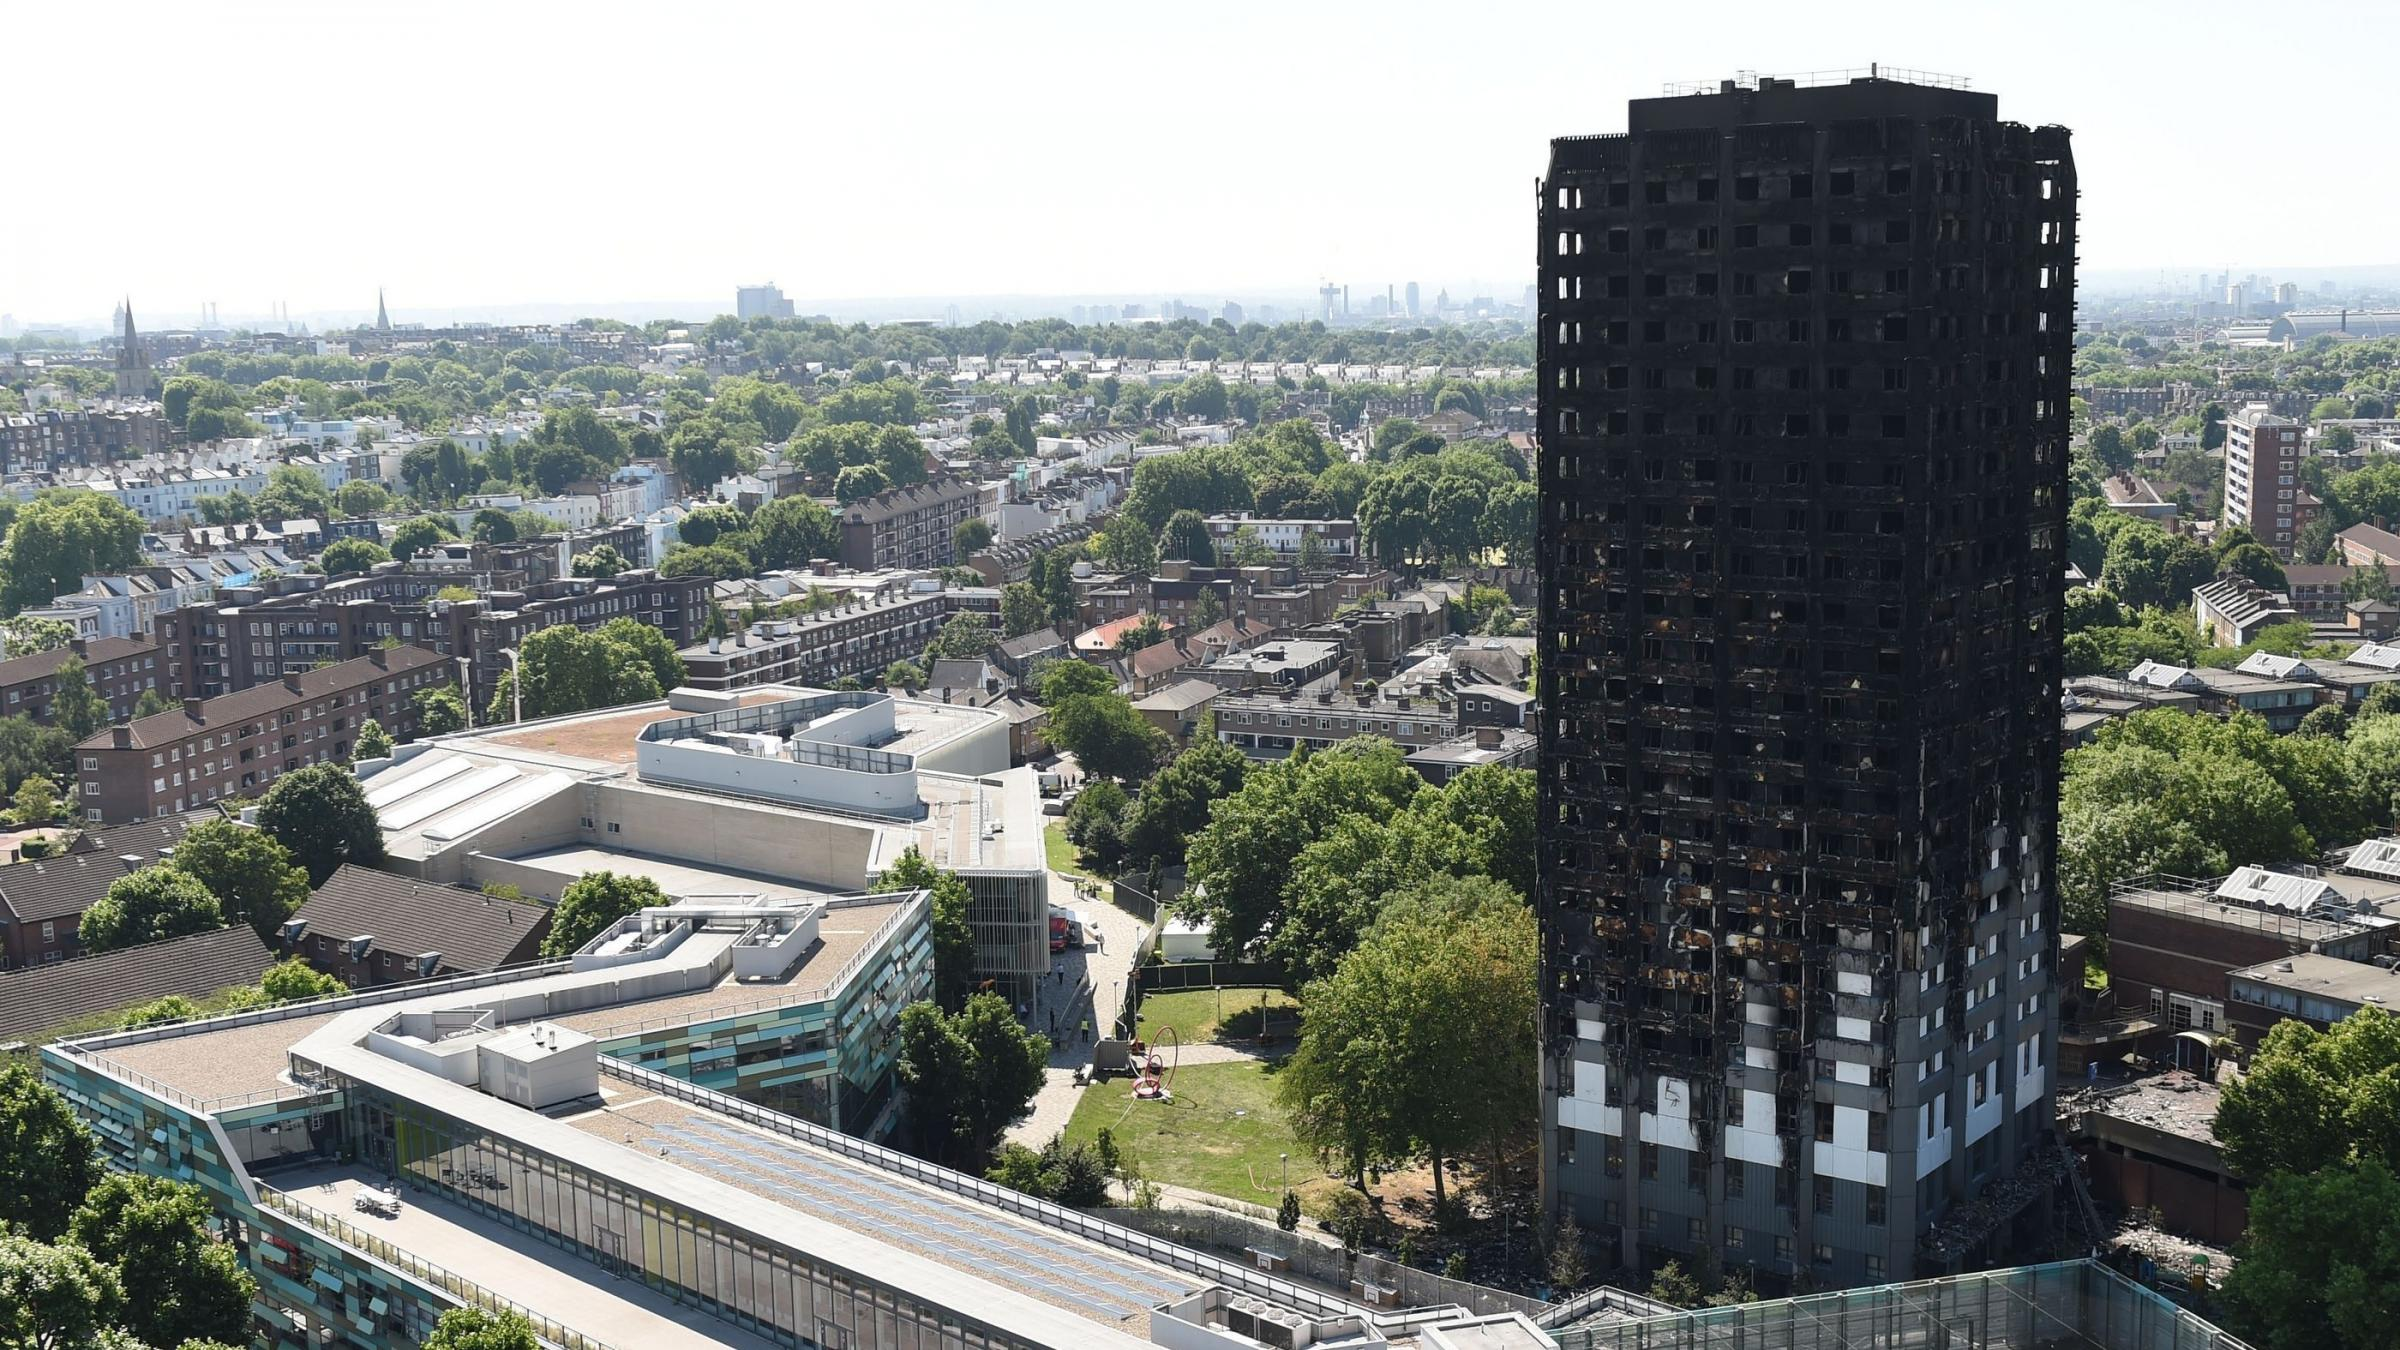 Banned materials suspected in London fire